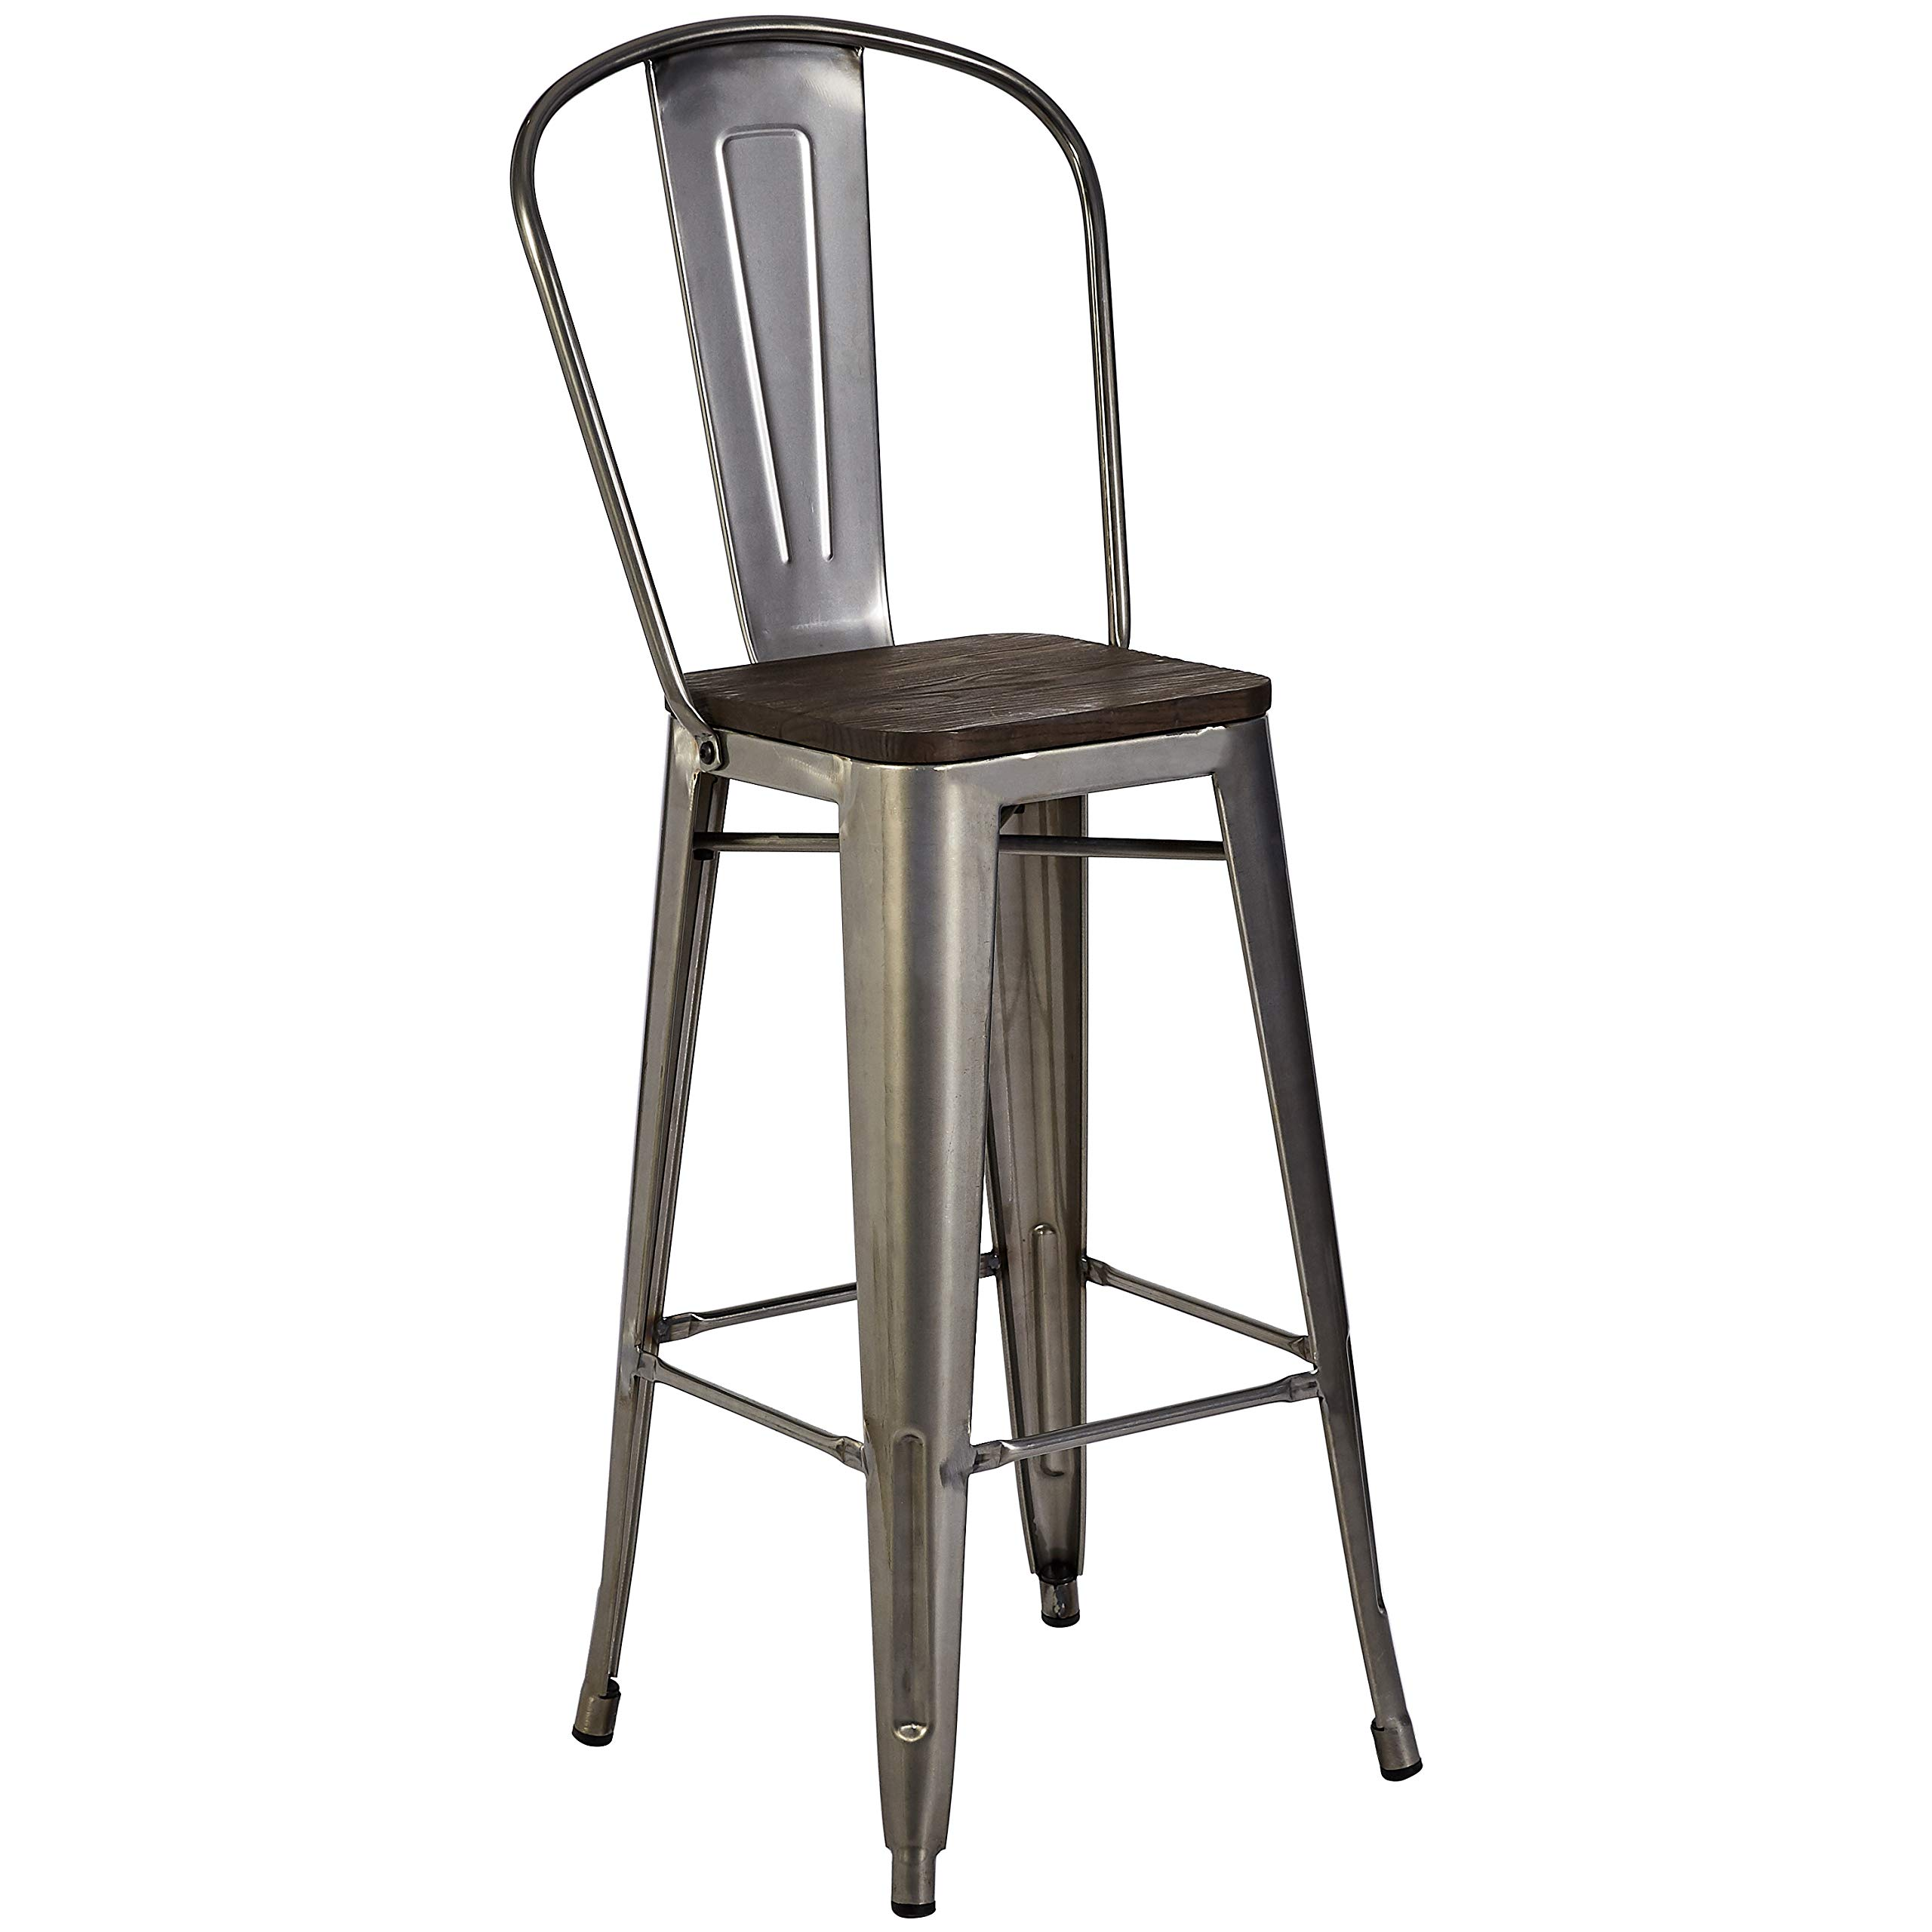 Pioneer Square Midvale 30-Inch Bar-Height Metal Stool with Back Rest, Set of 2, Silver Gray by Pioneer Square